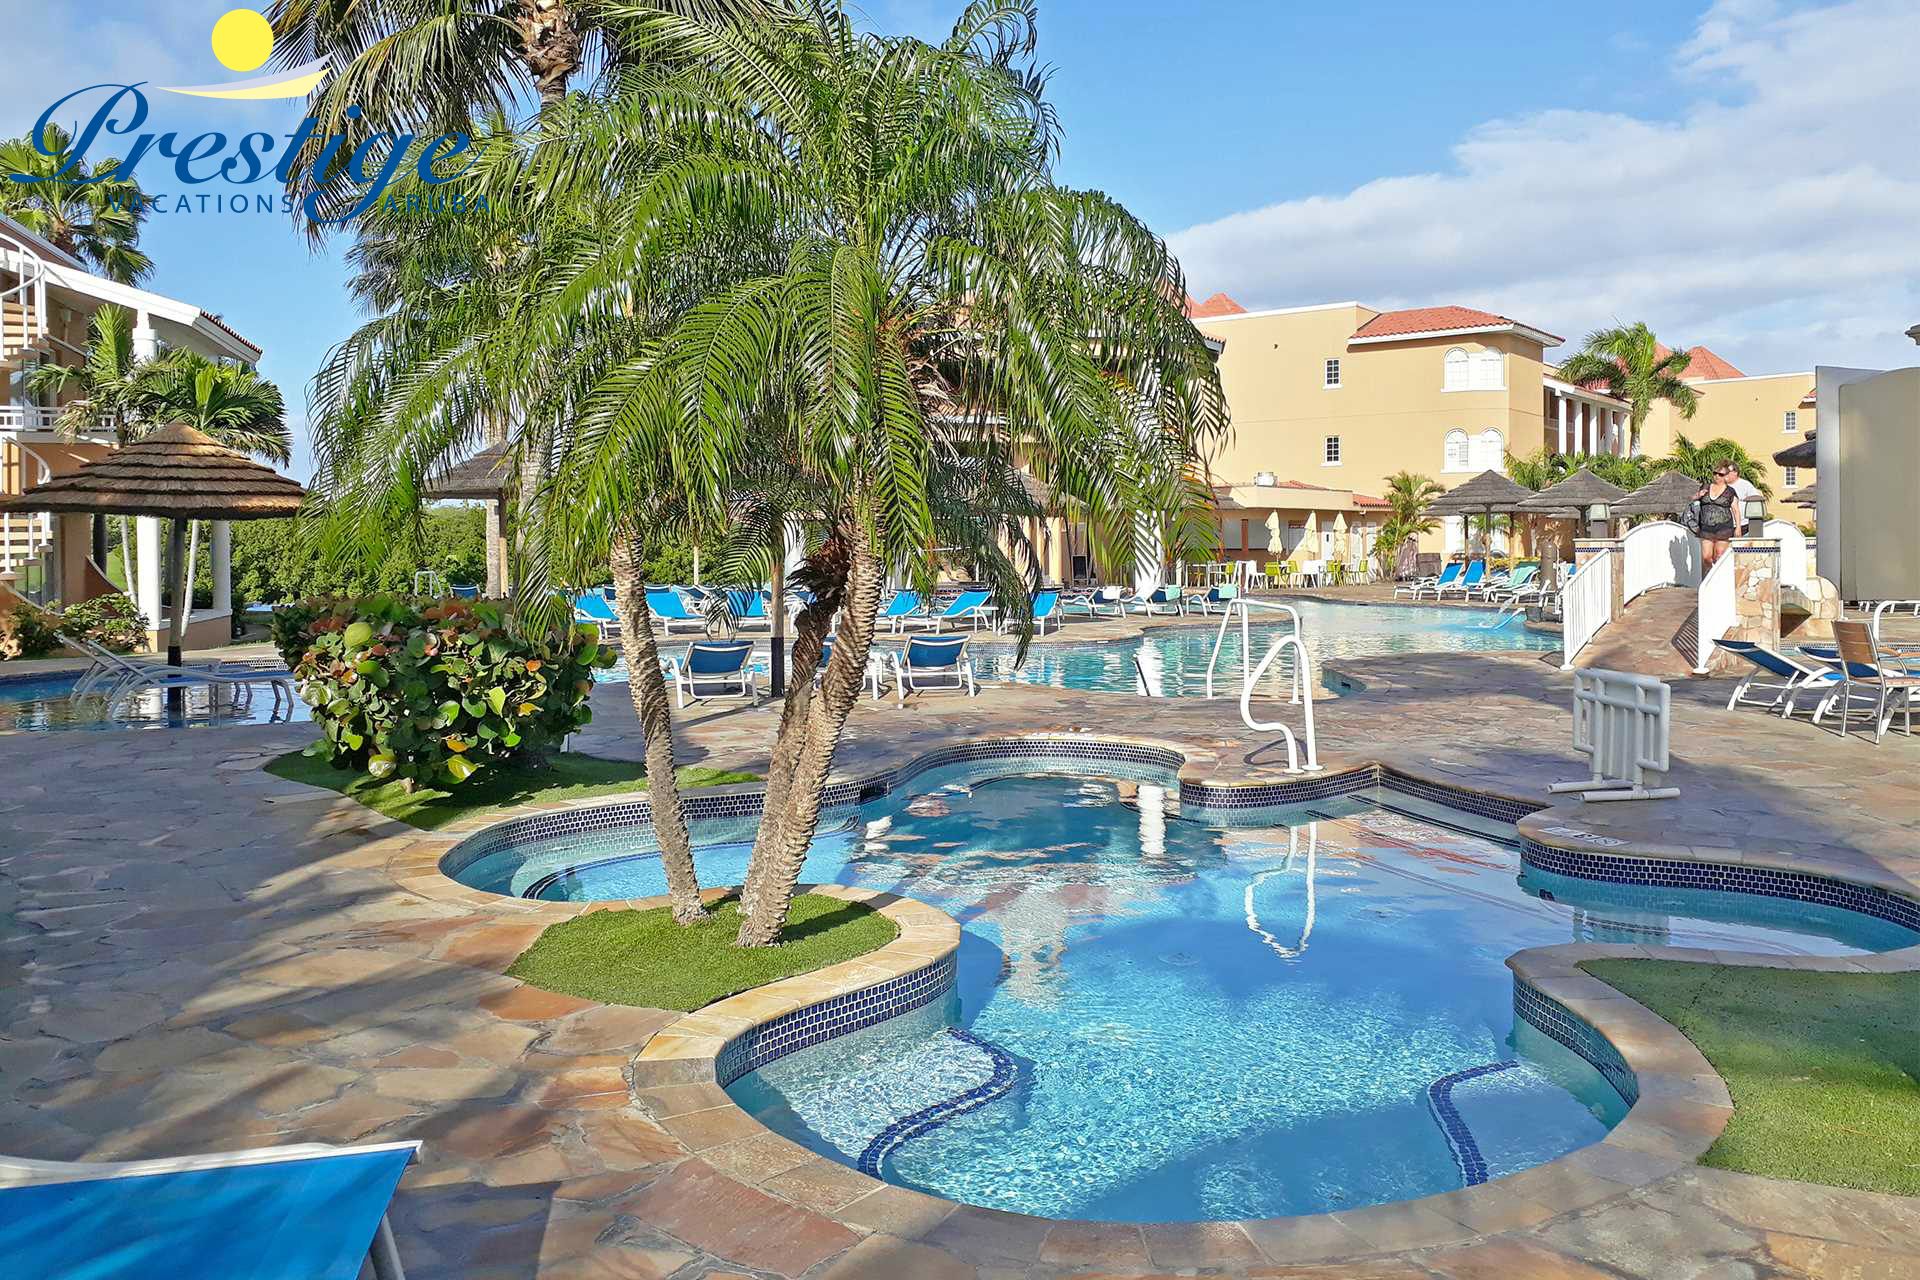 Divi resort main swimming pool area with large hot tub